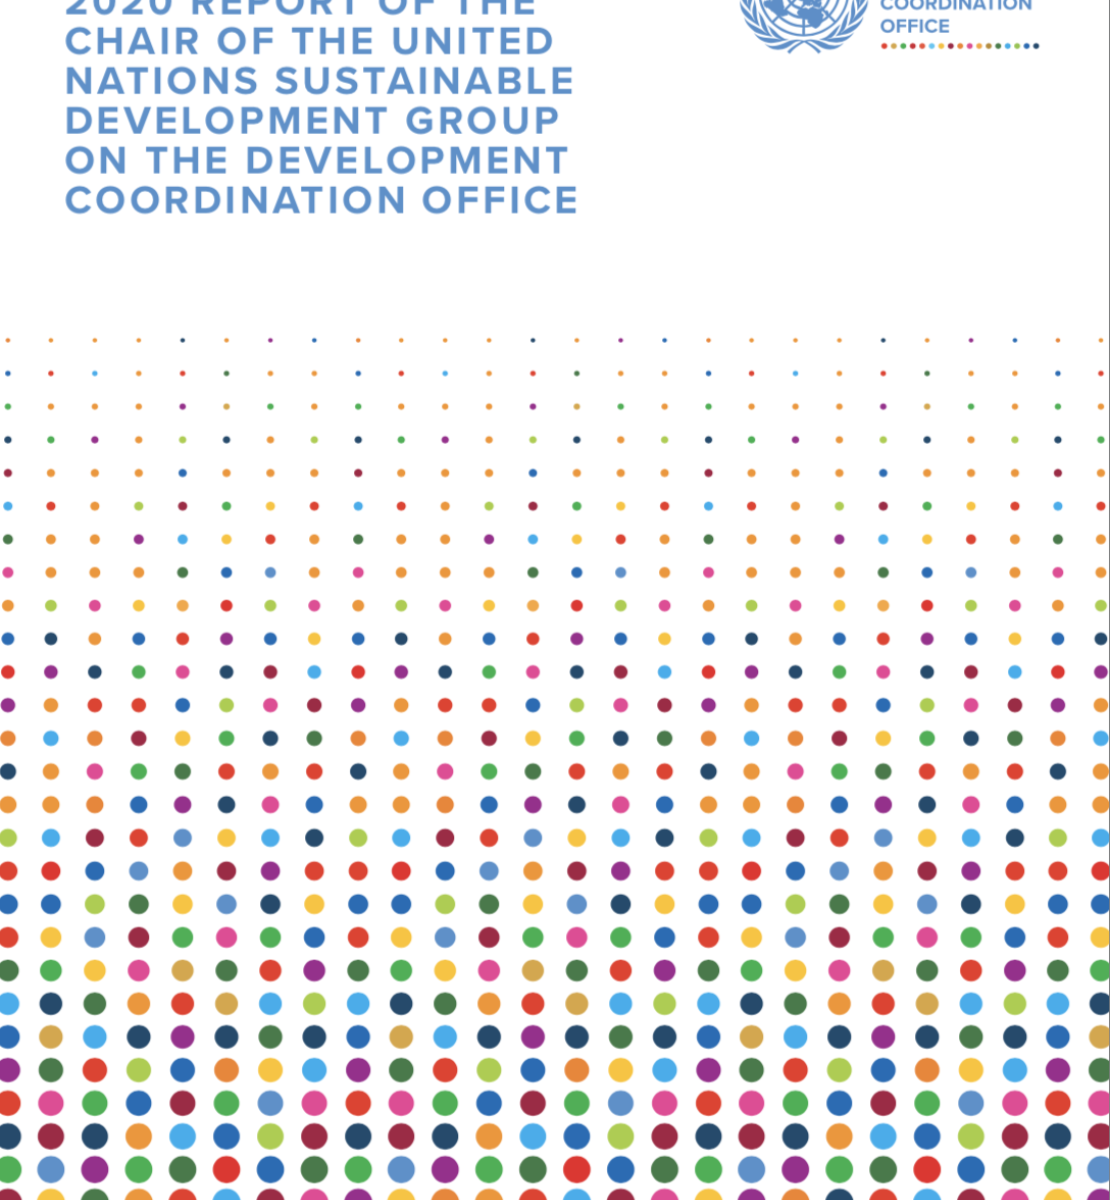 """Cover shows the title """"2020 Report of the Chair of the United Nations Sustainable Development Group on the Development Coordination Office"""" above a gradient of colourful dots underneath and the UNSDG logo to the right."""